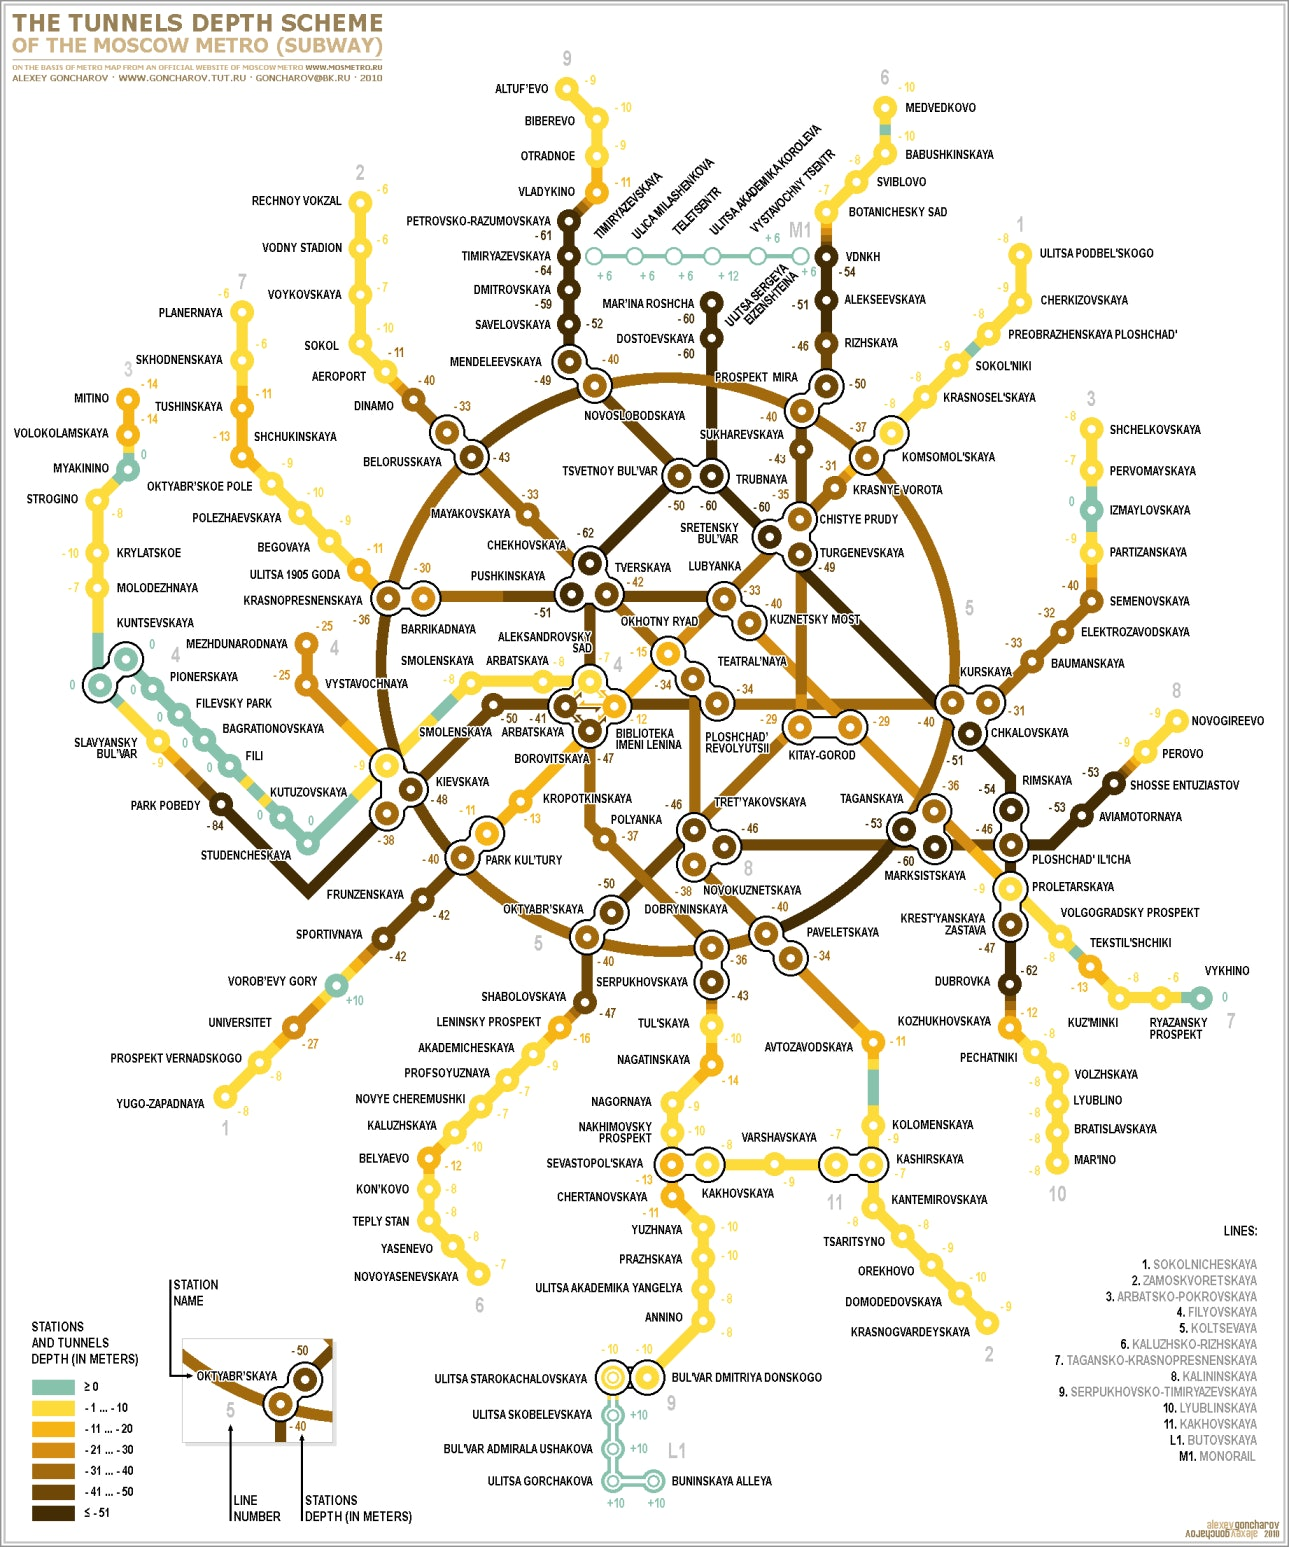 Moscow metro network by depth.